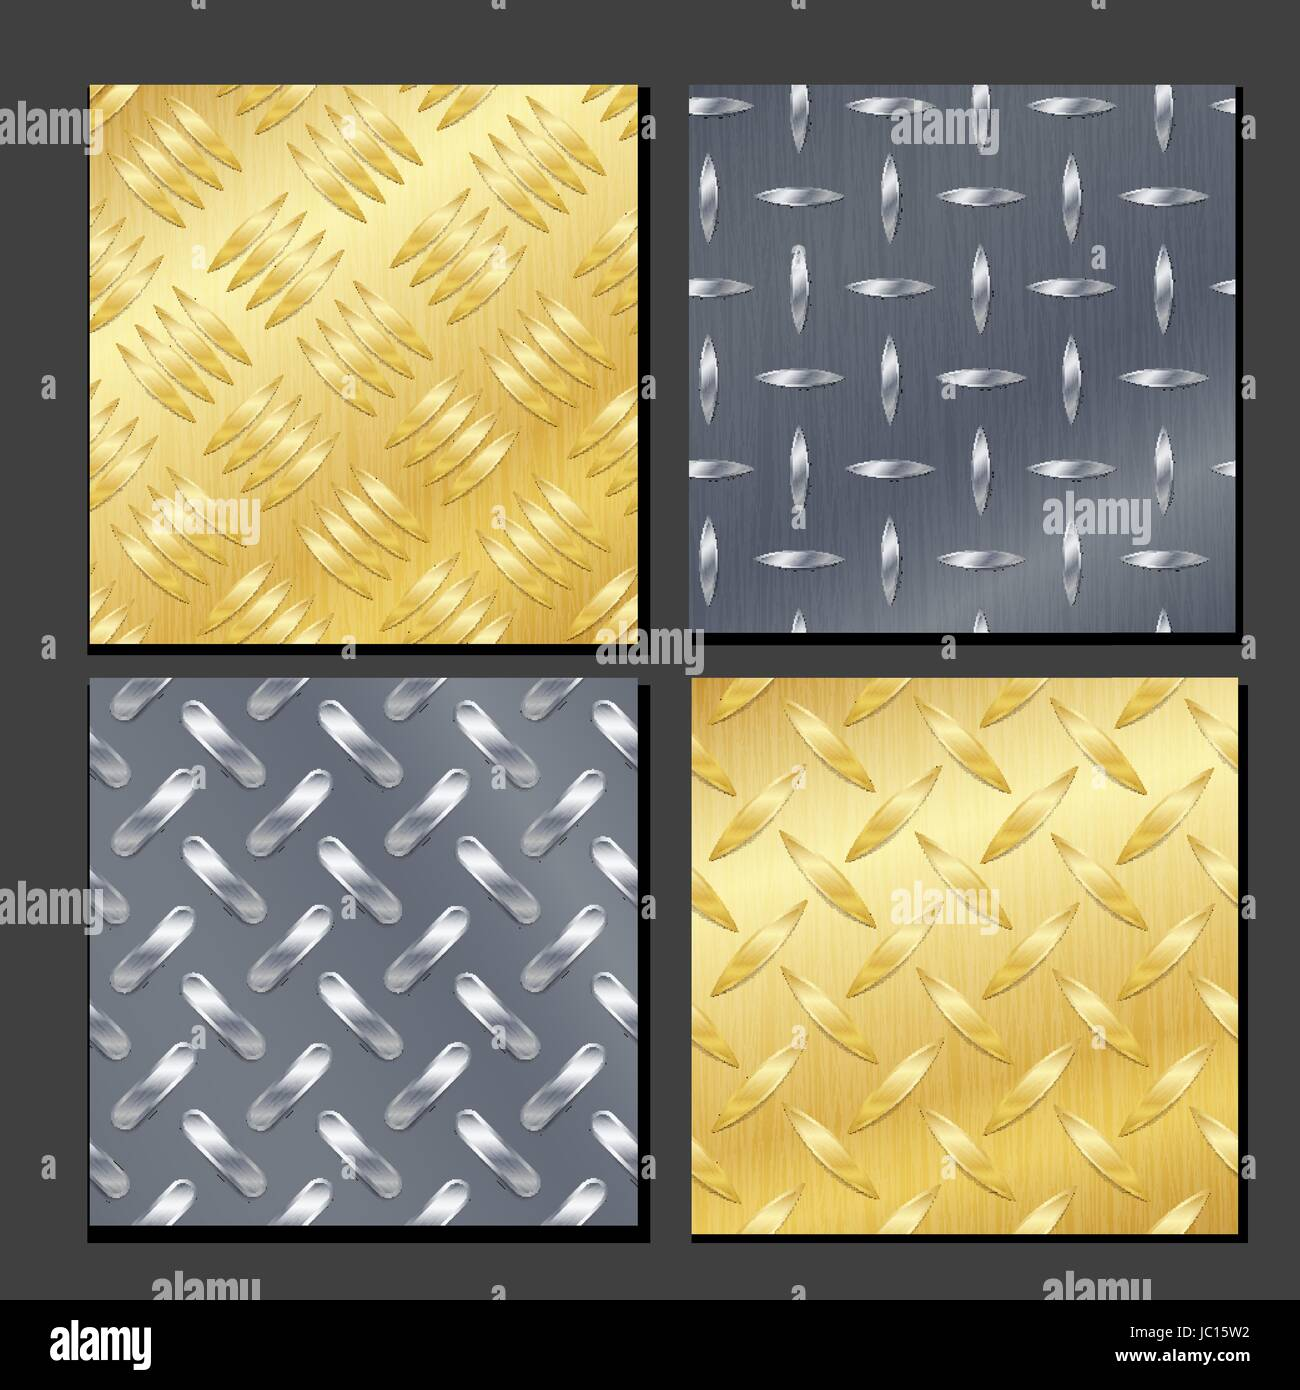 Seamless Diamond Metal Background Set With Tread Plate. Gold, Chrome, Silver, Steel, Aluminum. Vector Pattern - Stock Vector